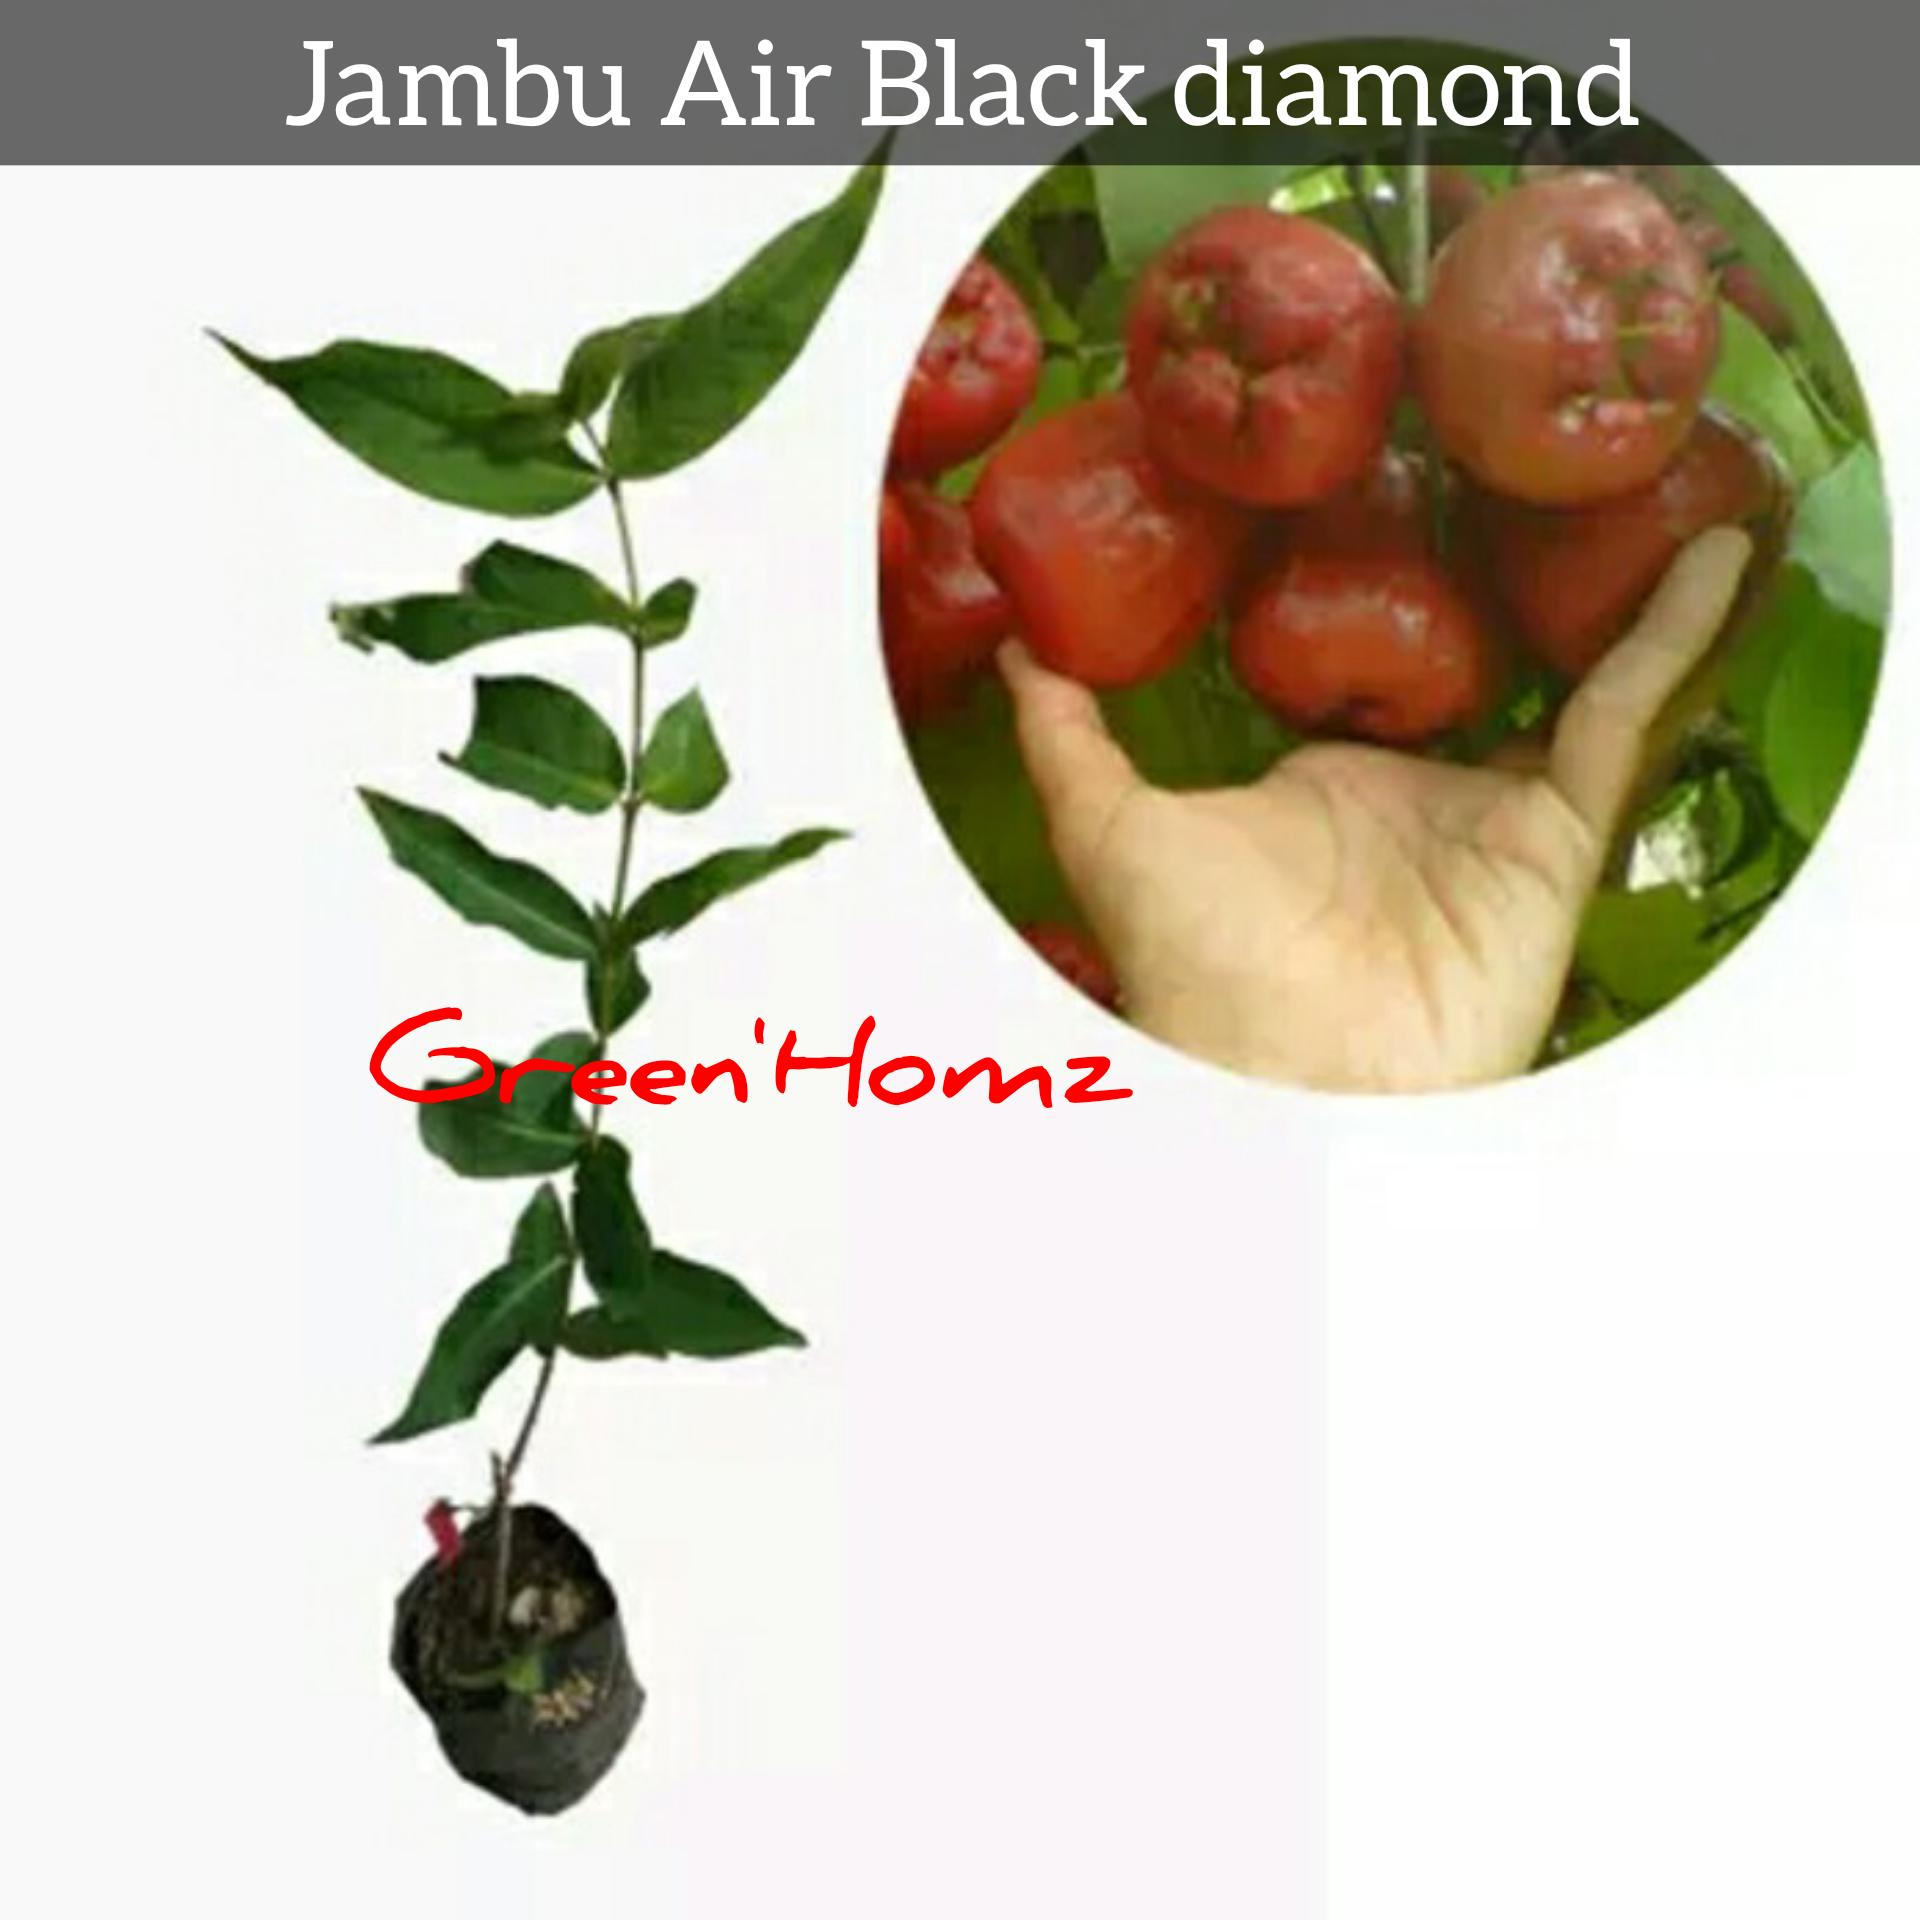 BIBIT JAMBU BLACK DIAMOND UNGGUL 50cm